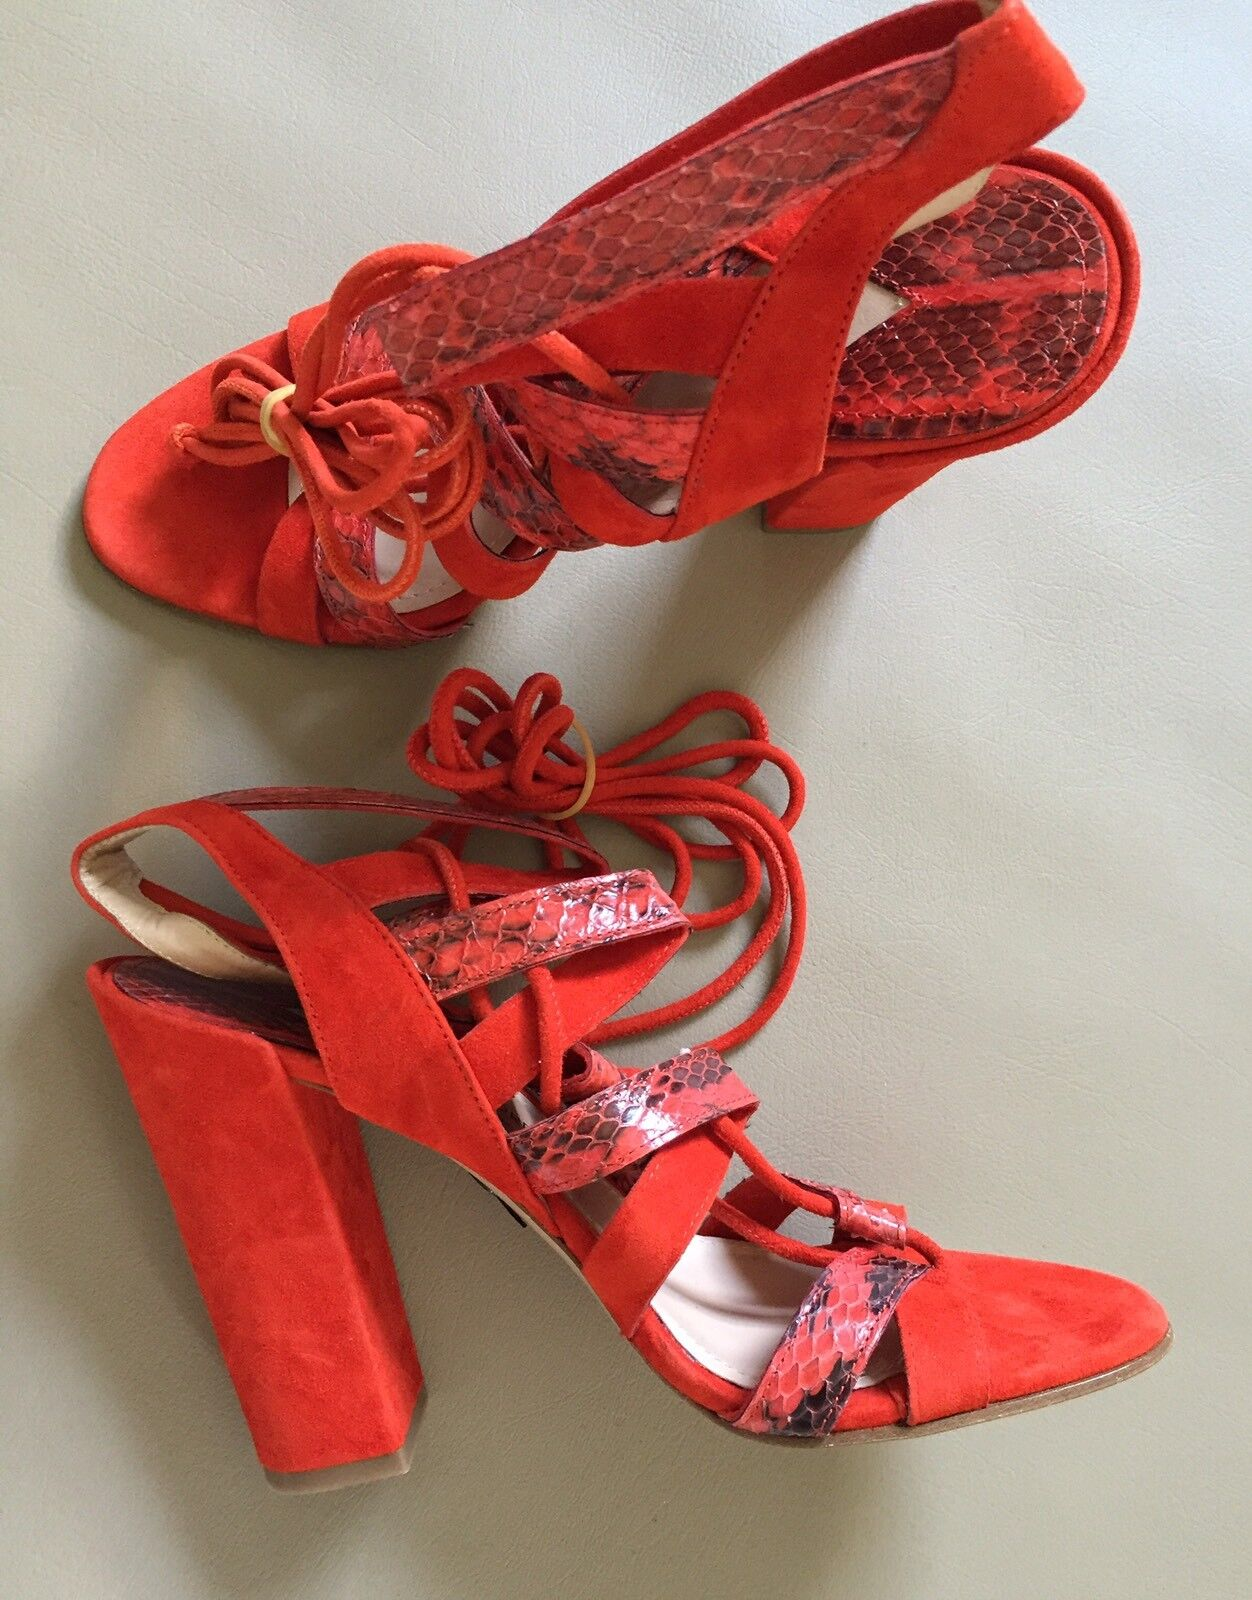 NEW PAUL ANDREW FOR J CREW LACE UP HIGH HEEL SANDALS SZ 7 RED LEATHER